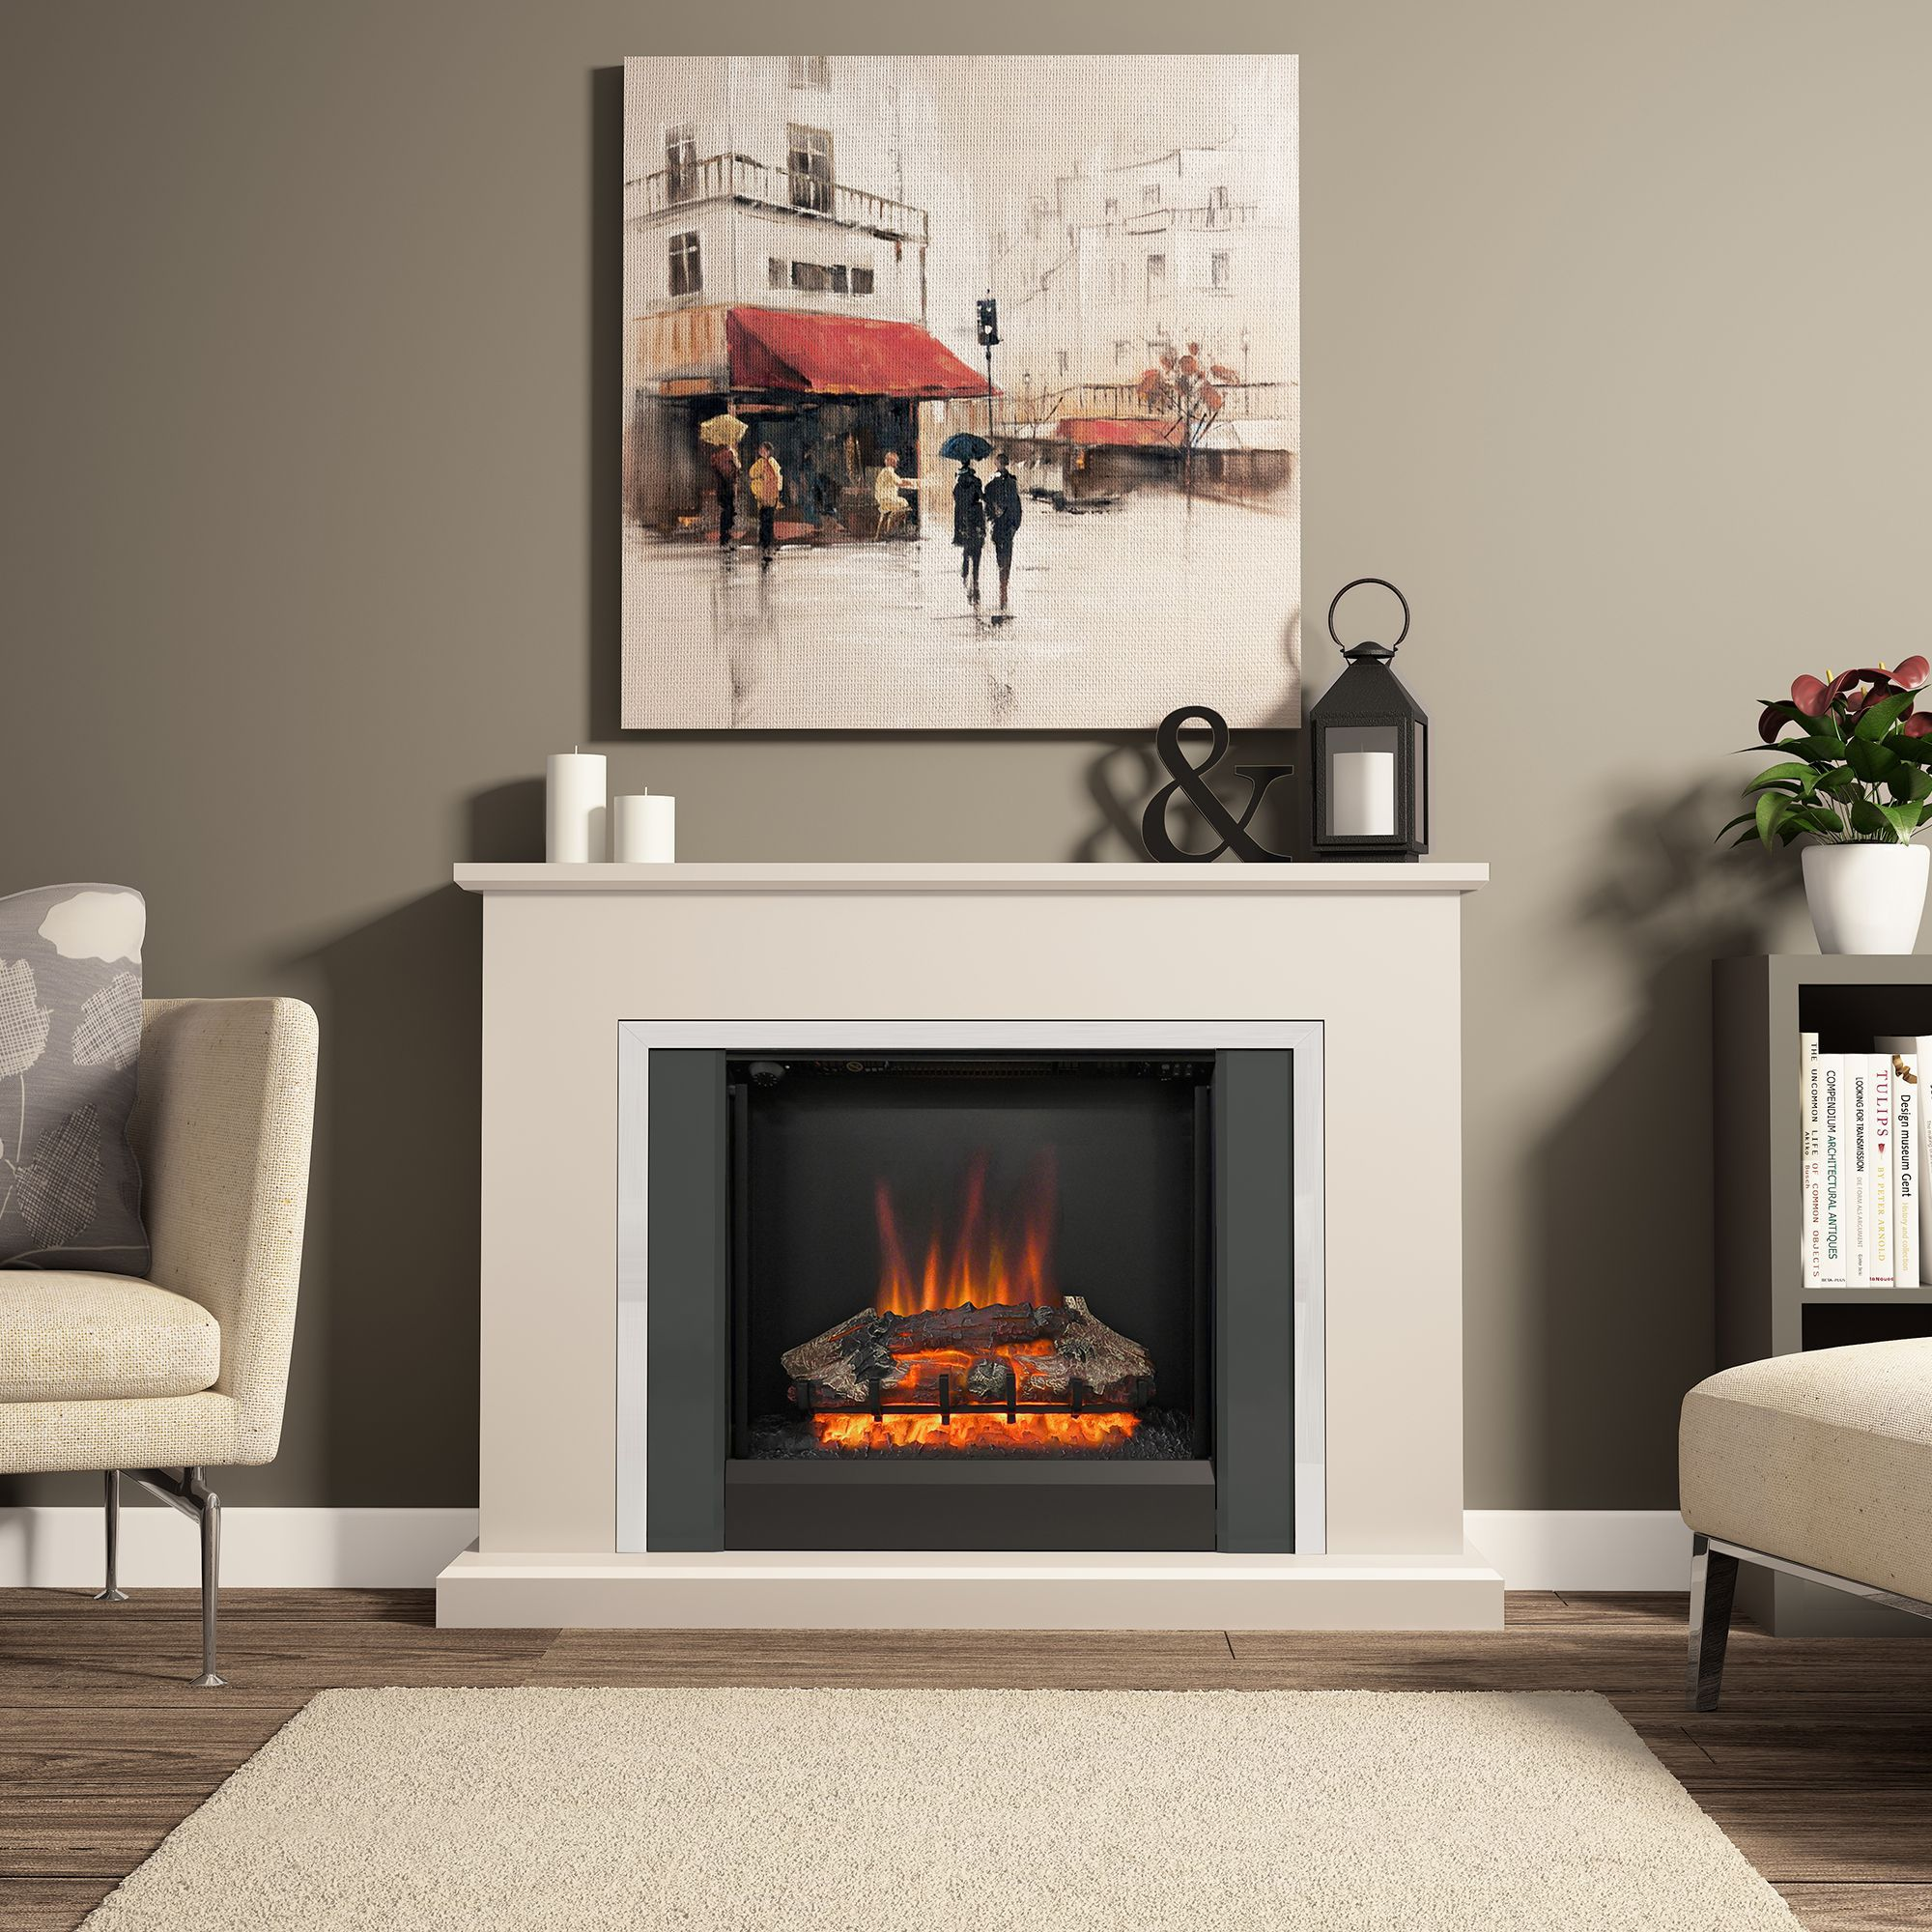 Be Modern Ashburnham Black Led No Remote Control Electric Fire Suite